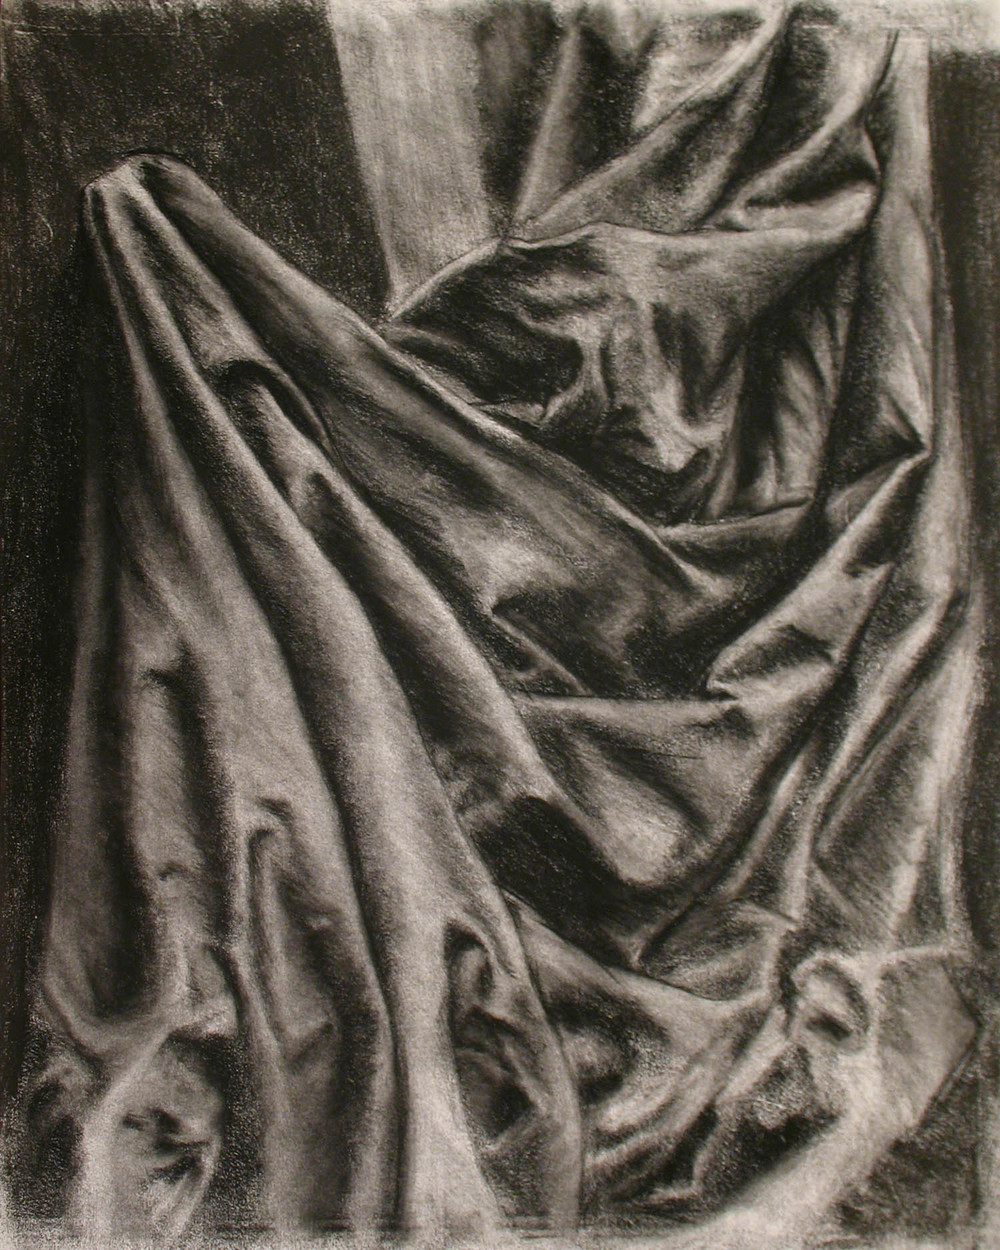 Drapery Study in Charcoal